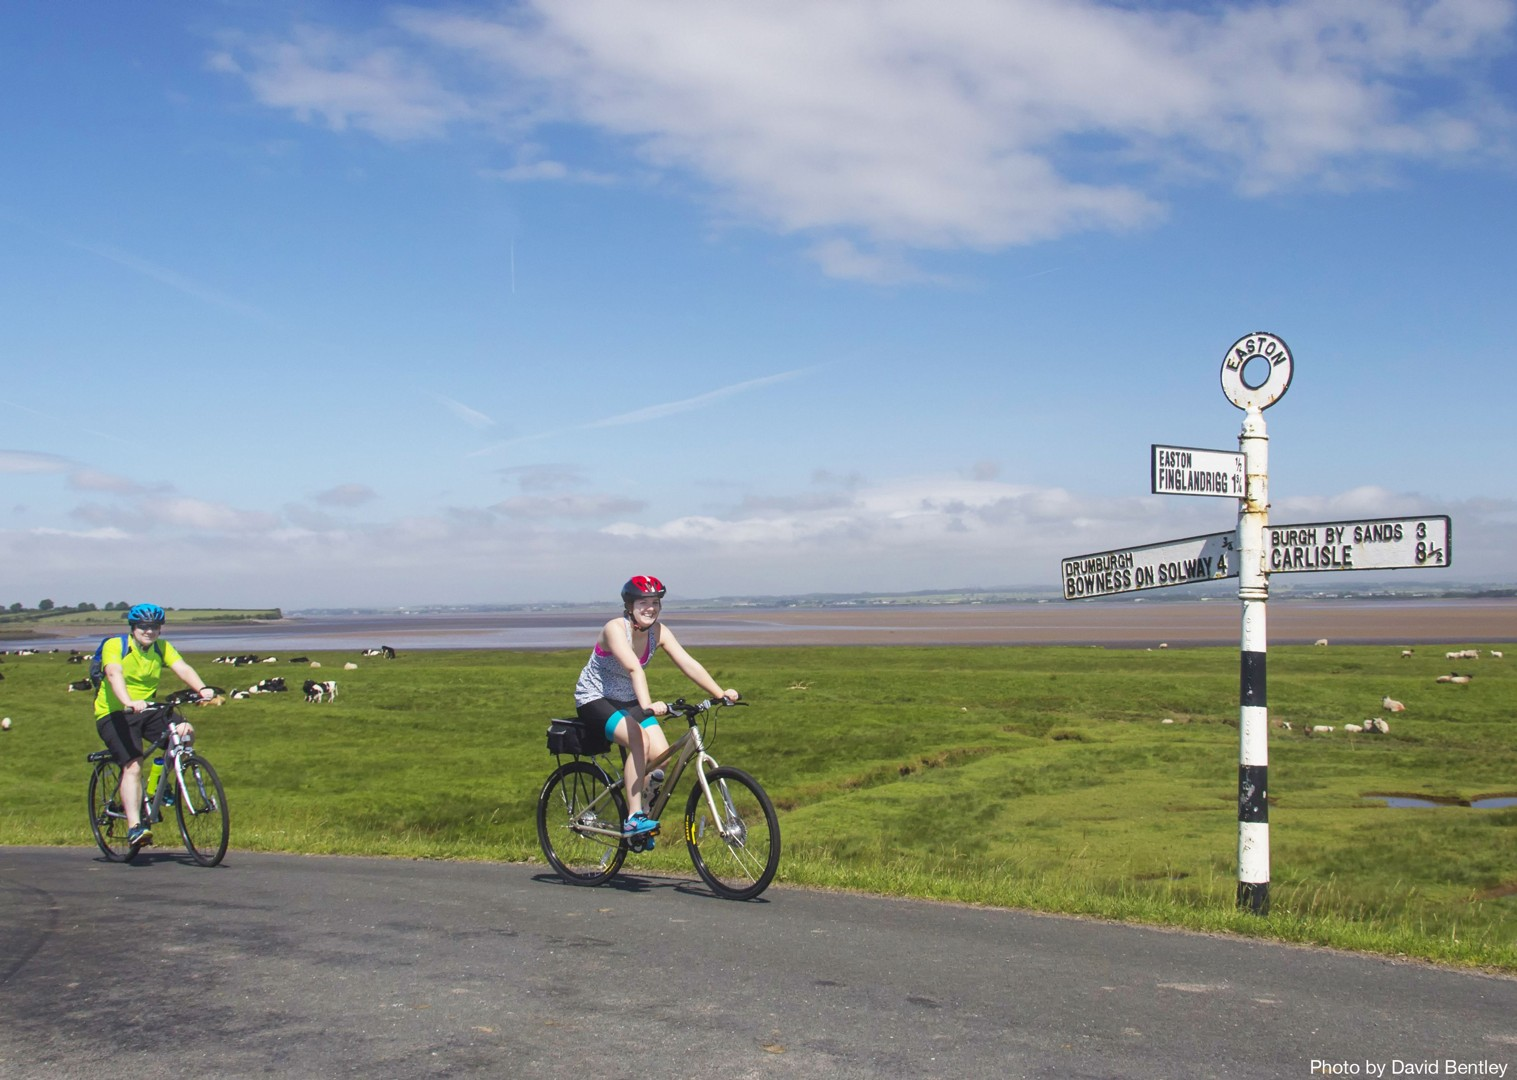 Supported-Leisure-Cycling-Holiday-Hadrians-Cycleway-UK.jpg - UK - Hadrian's Cycleway - Supported Leisure Cycling Holiday - Leisure Cycling